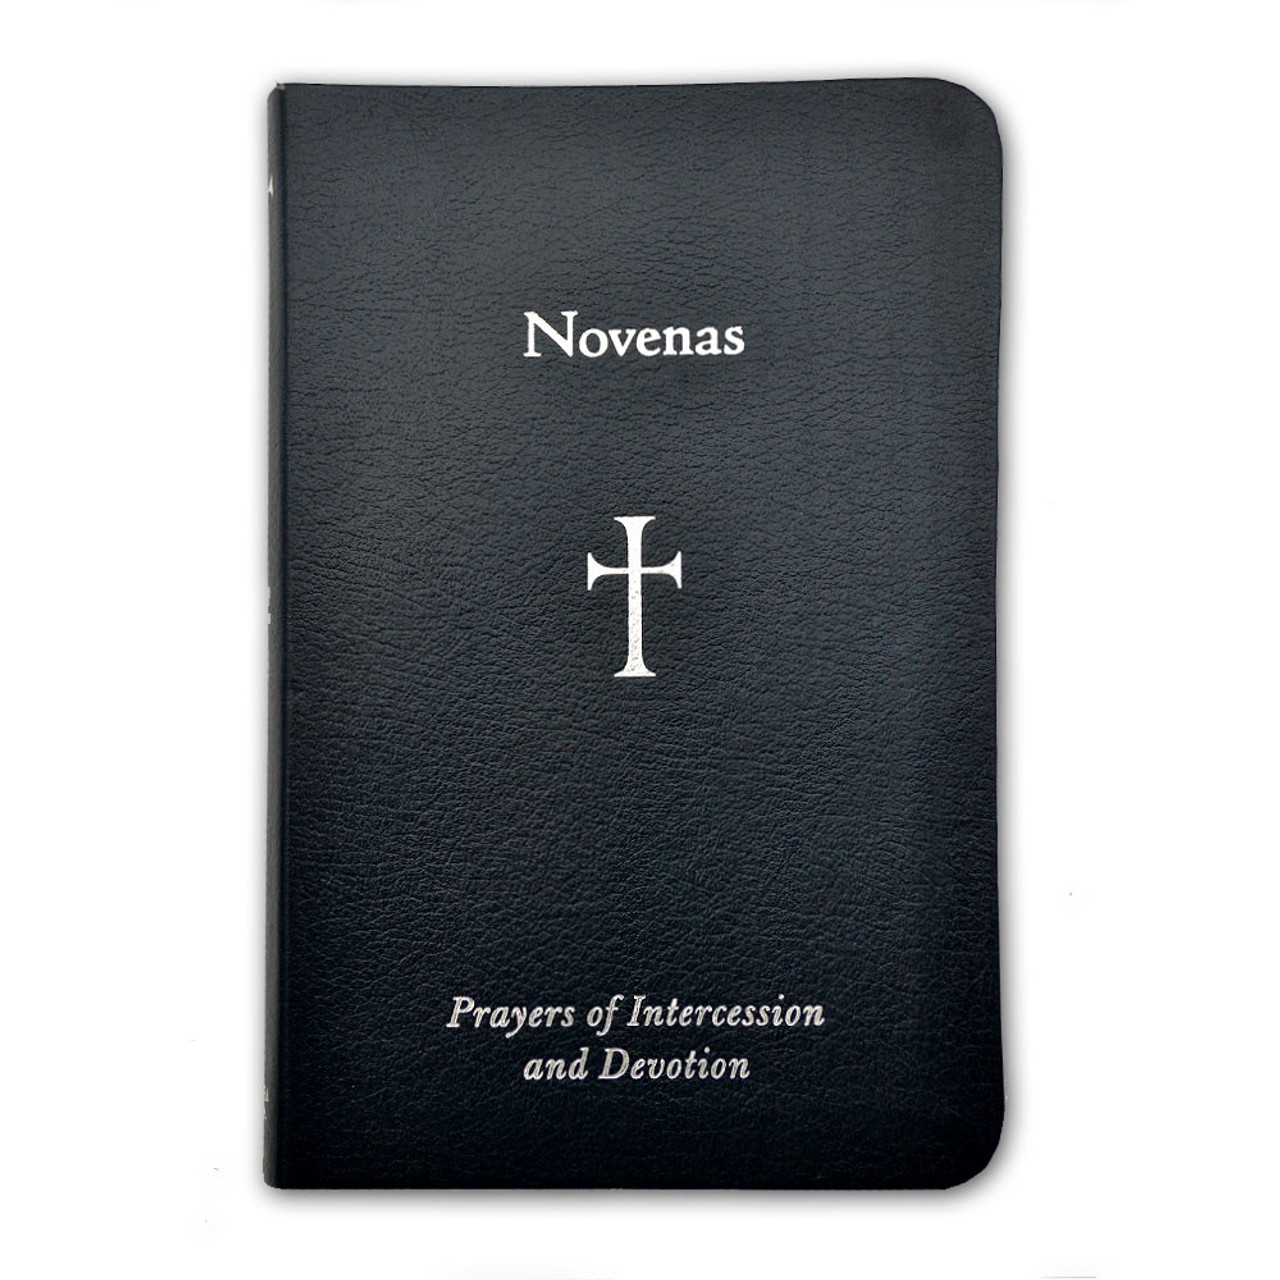 Novenas Prayers of Intercession and Devotion